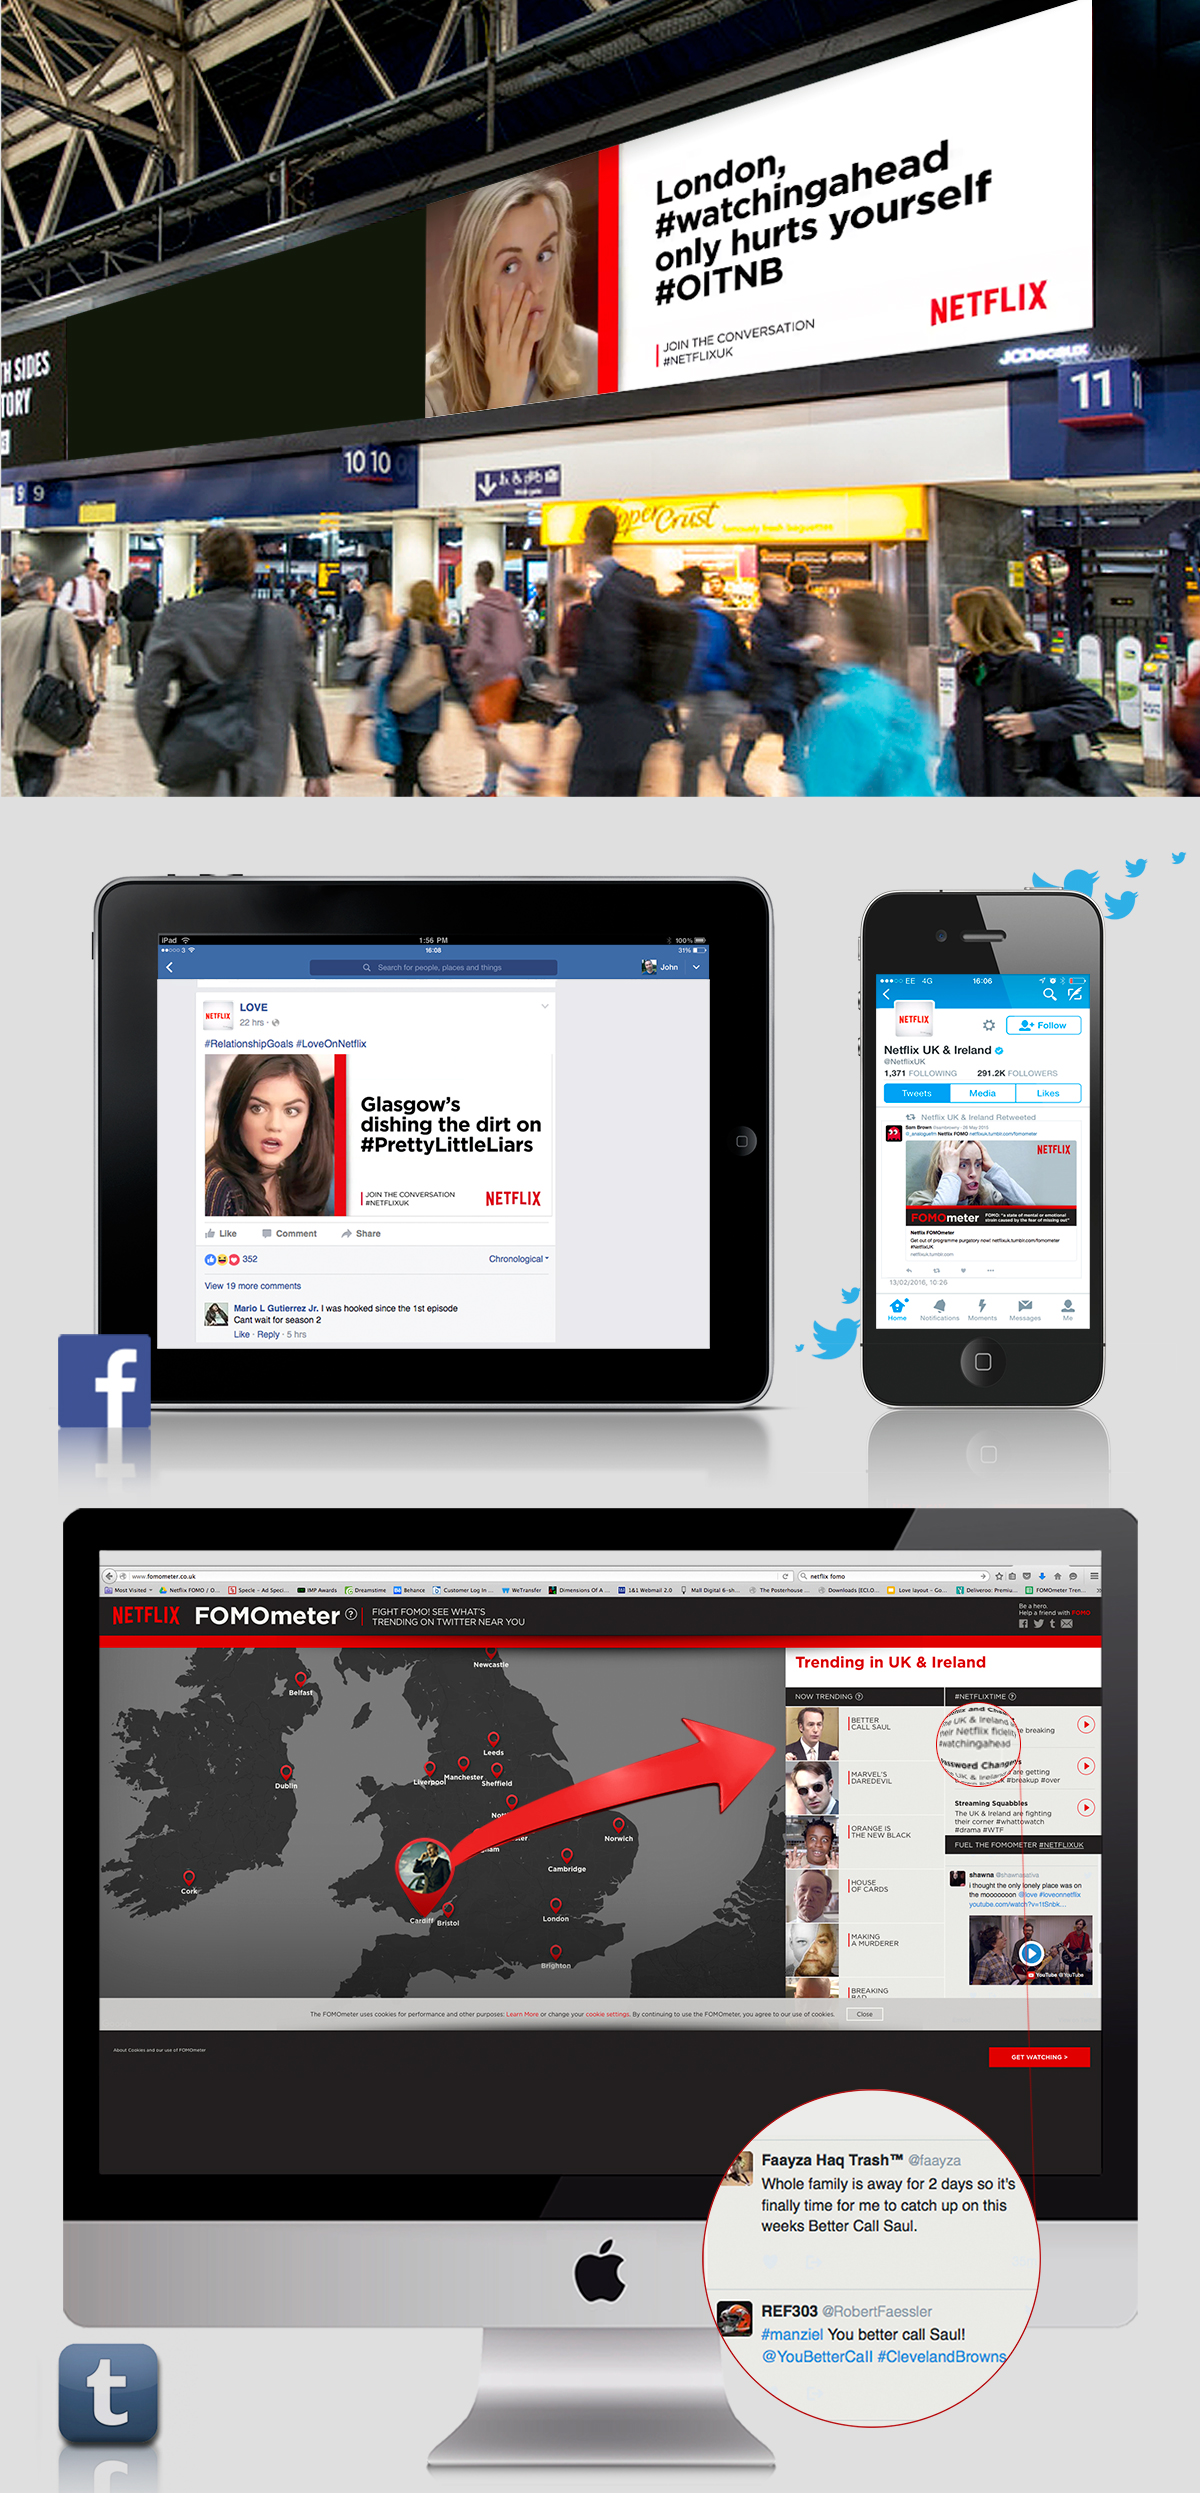 Social assets to be used for Facebook, Twitter and other Miscellaneous applications as well as online purposes.